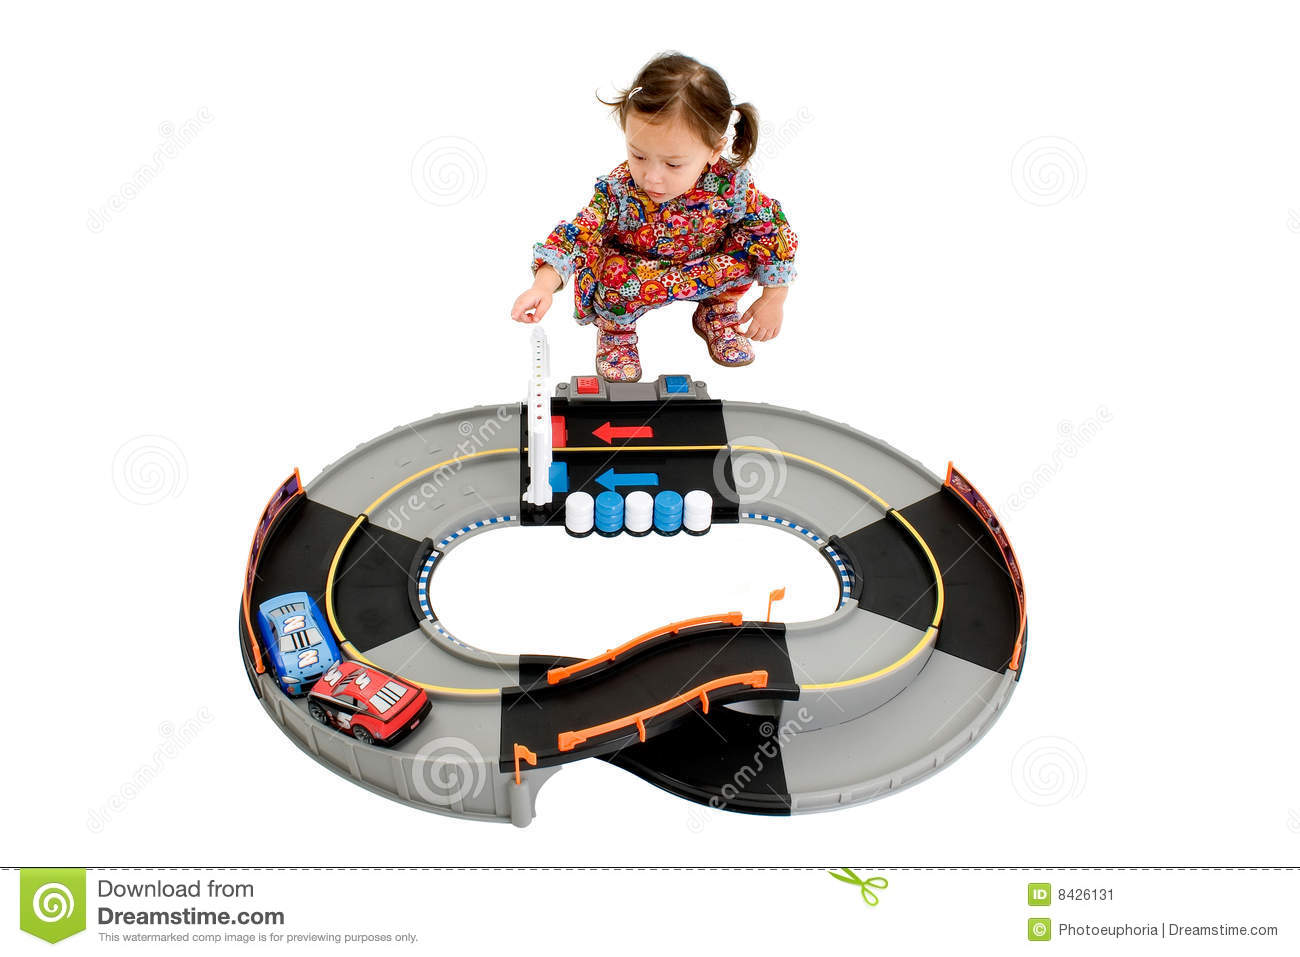 Girl playing with racetrack